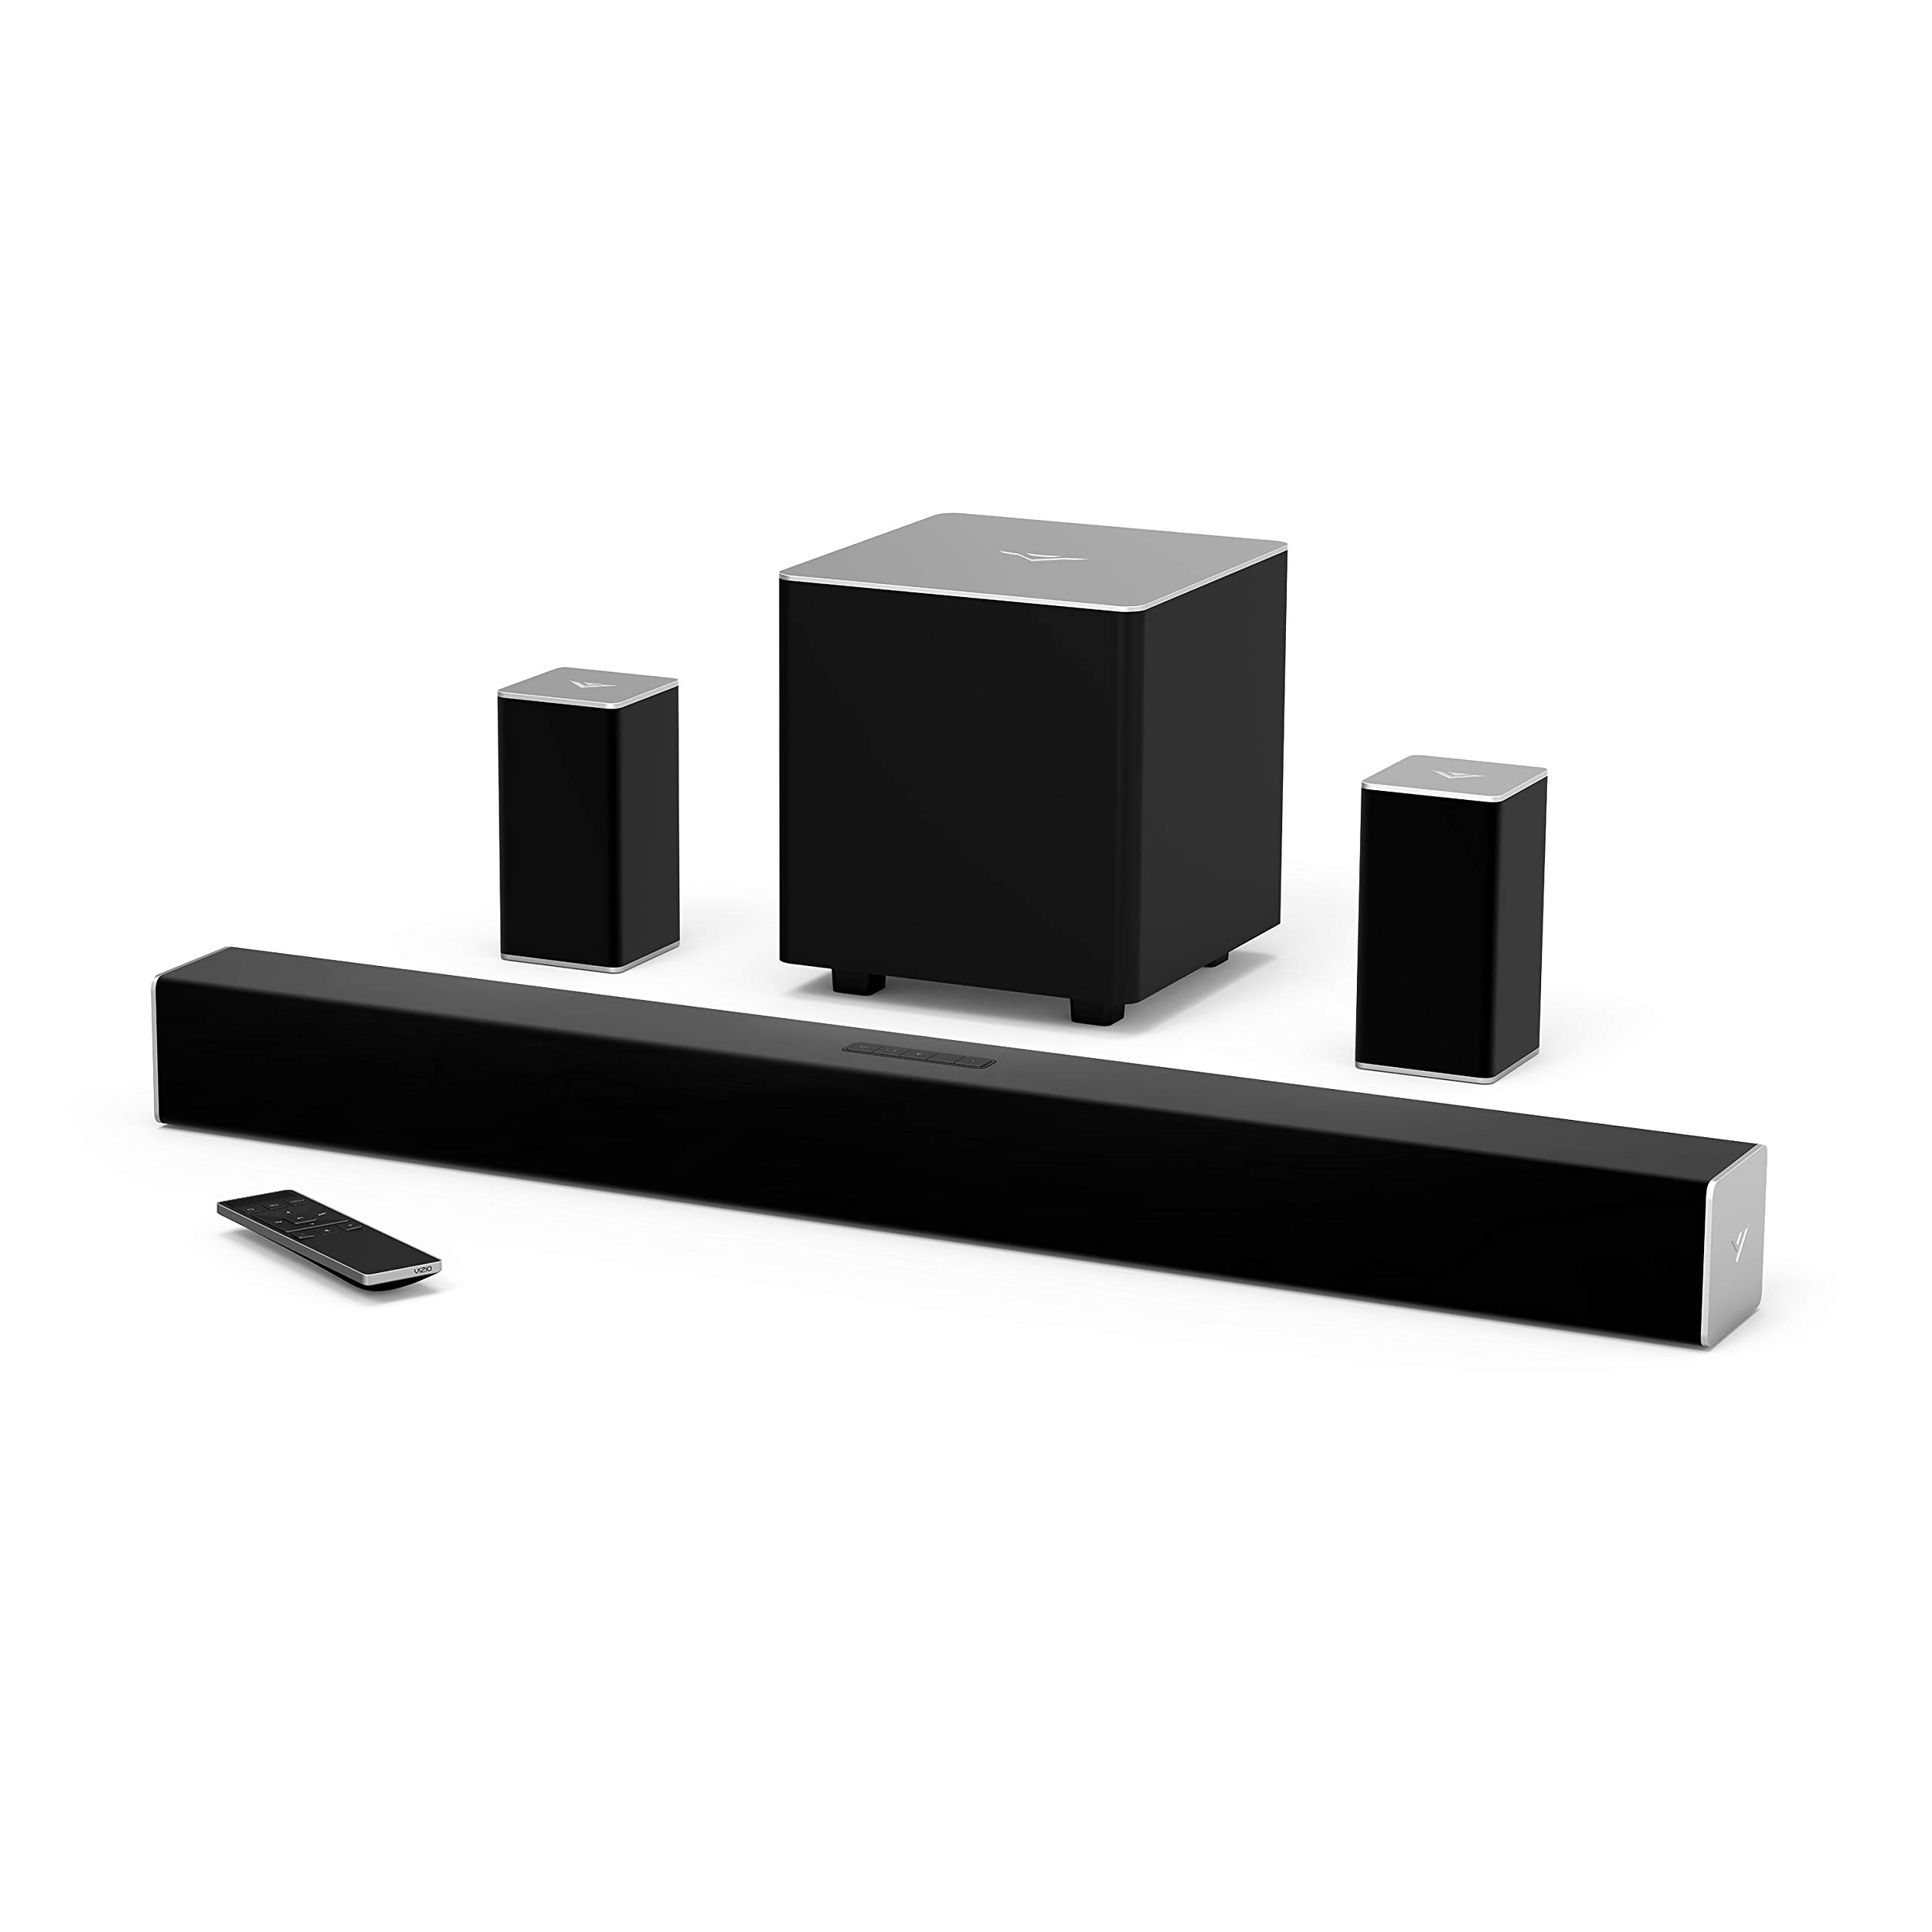 VIZIO 2017 32 Inch 5.1 Sound Bar, Speakers, Subwoofer (Renewed) by VIZIO (Image #1)